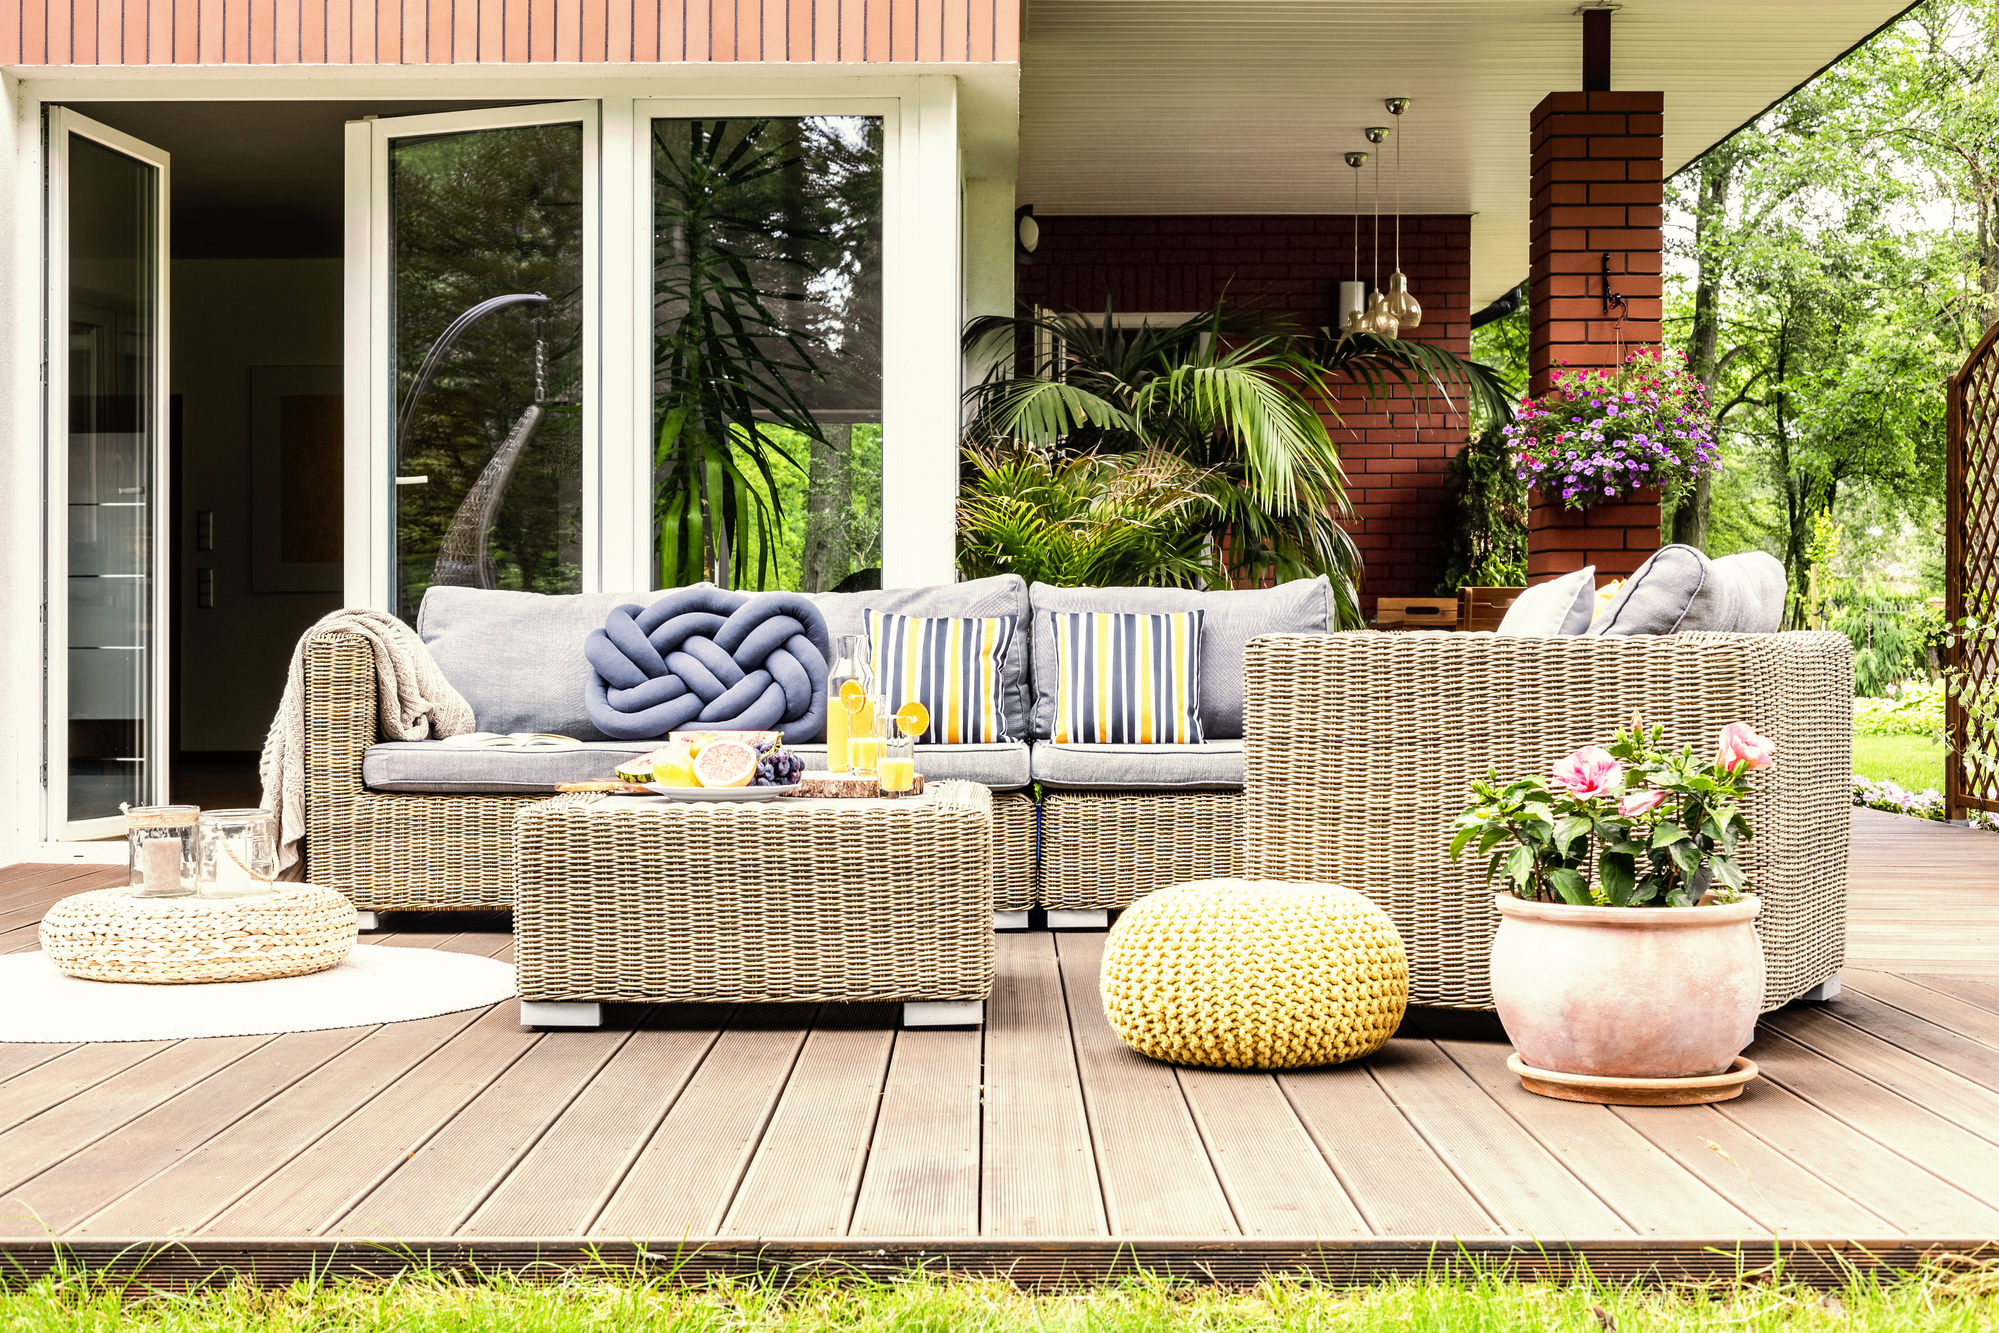 Outdoor patio seating area with big sofa and table.